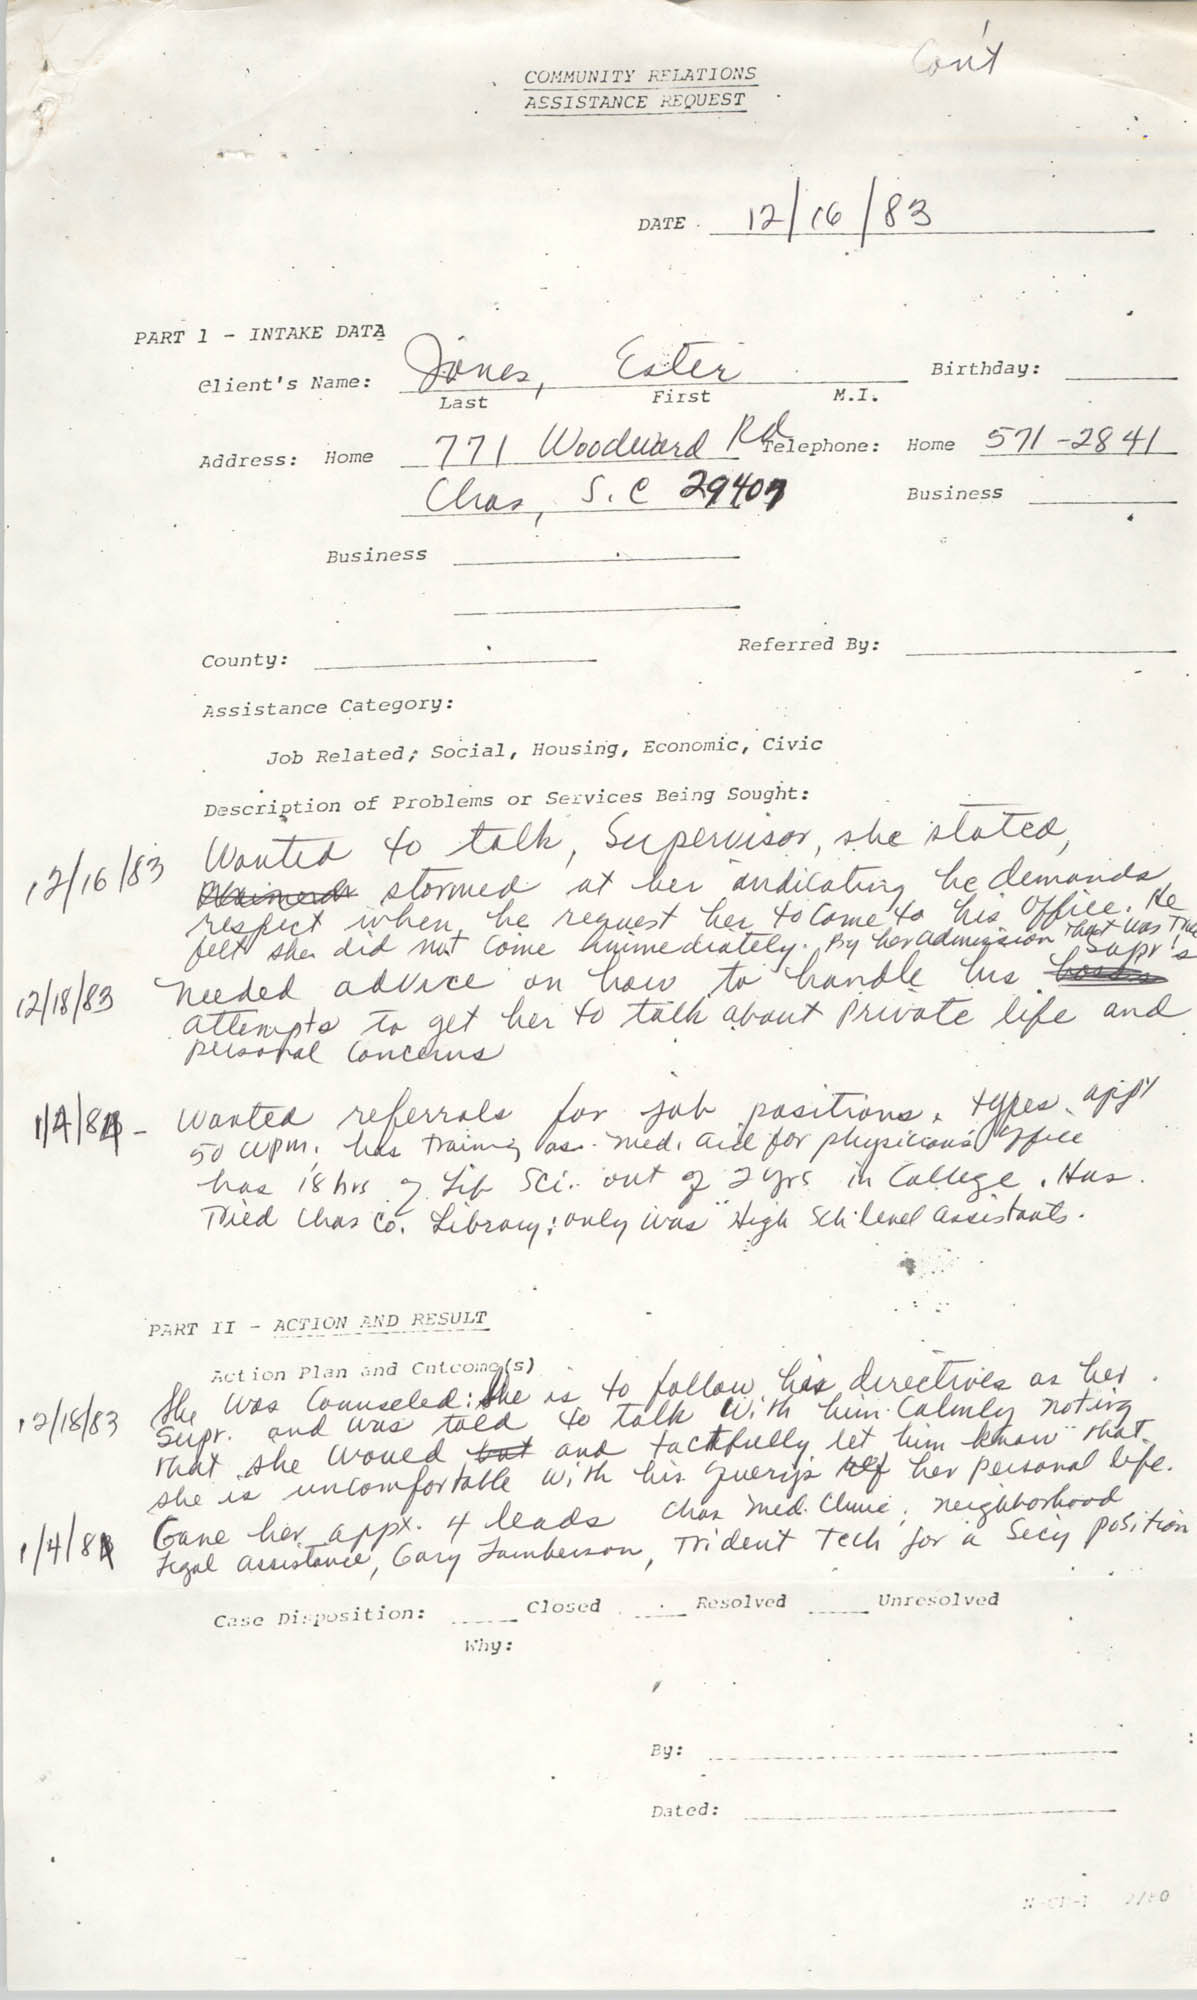 Community Relations Assistance Request, December 16, 1983